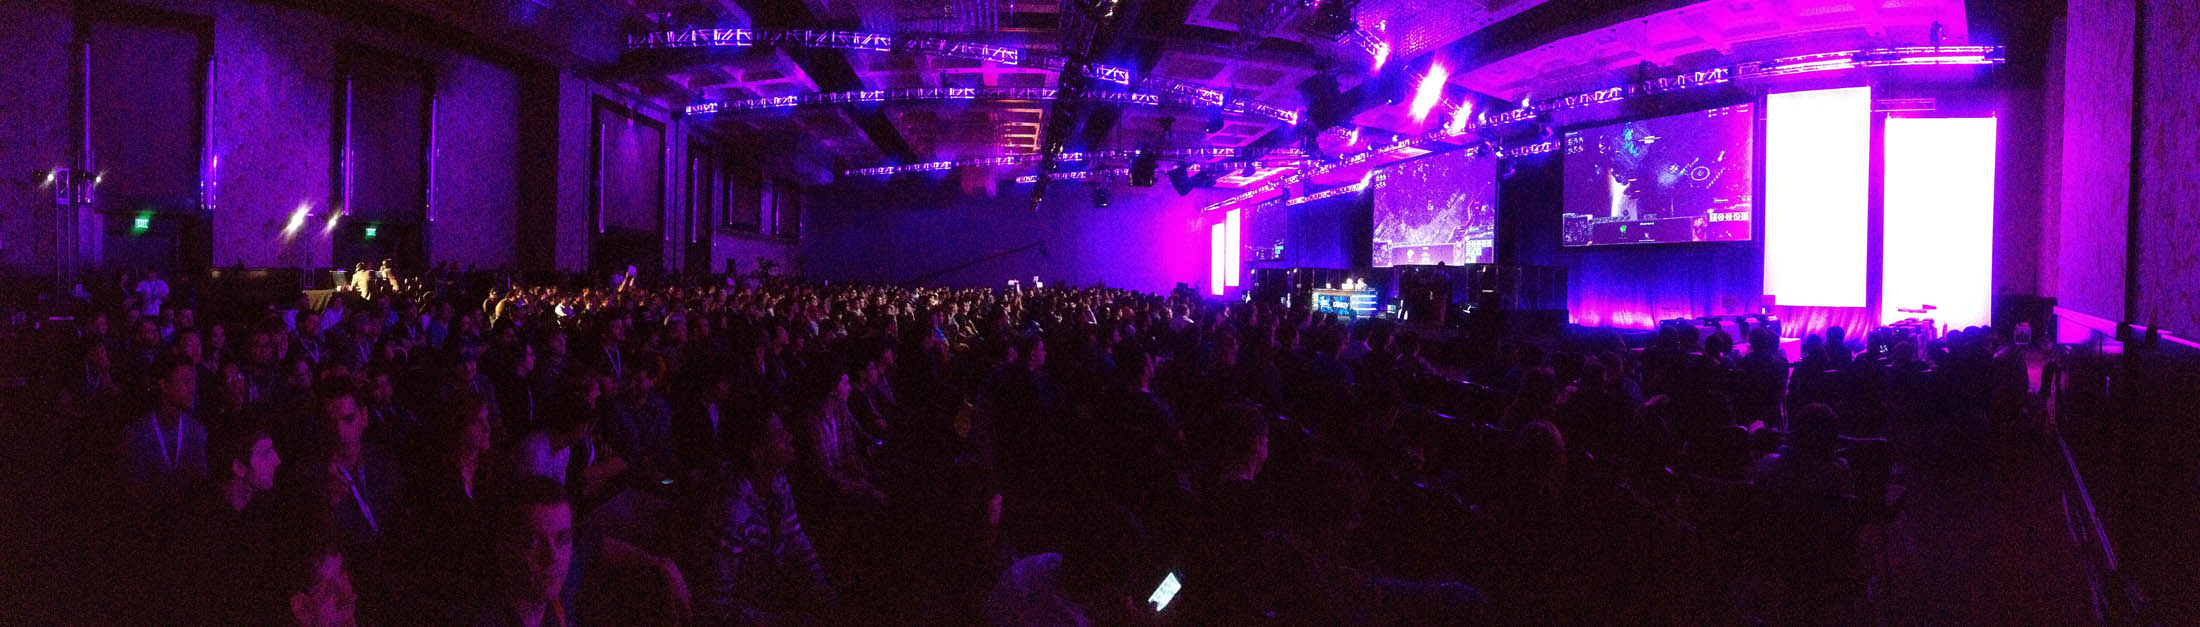 The crowd at IPL5